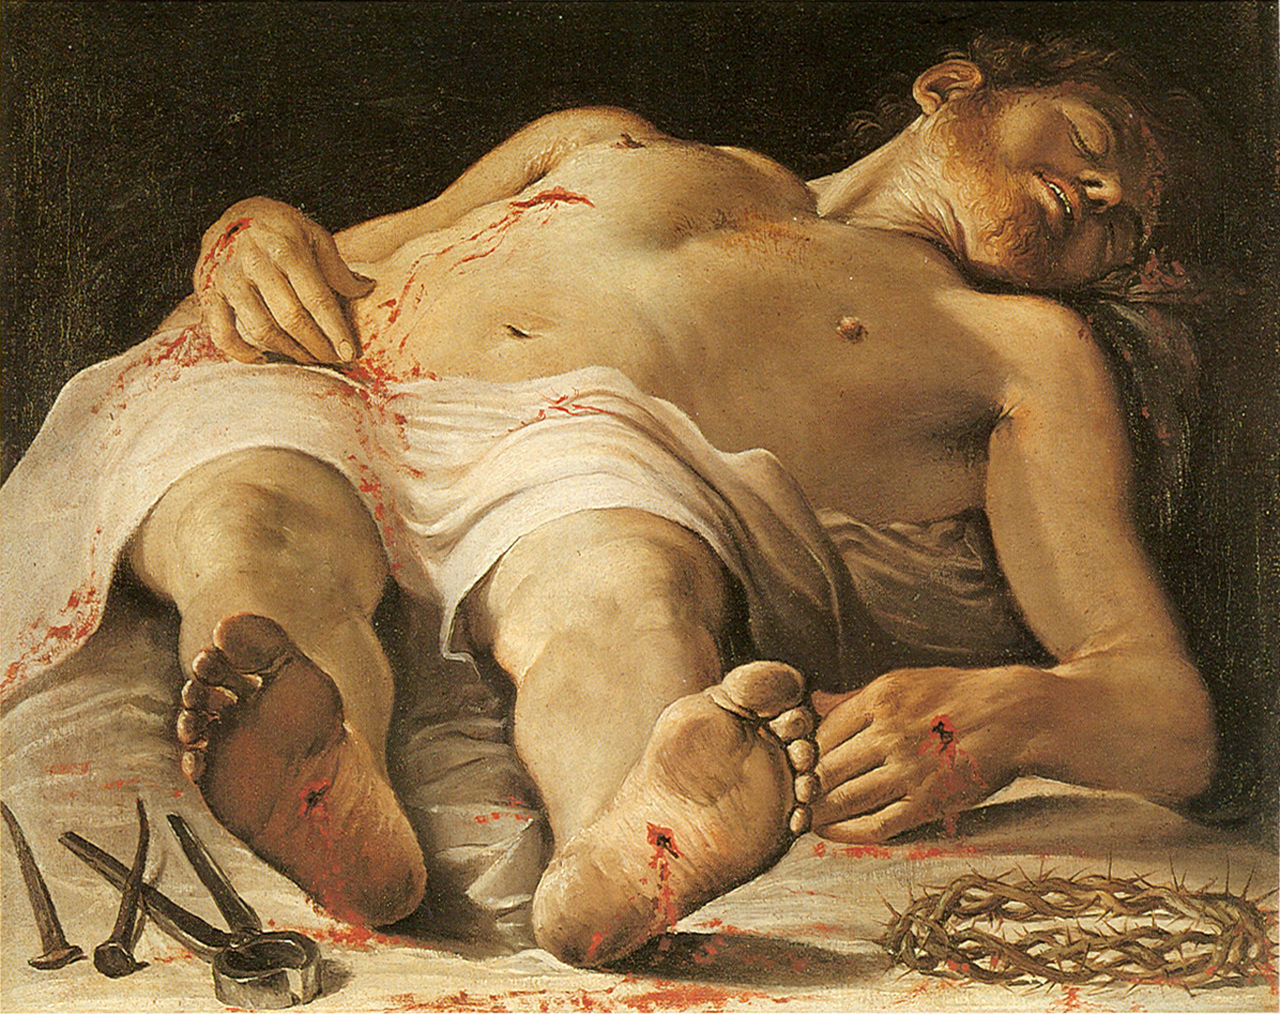 https://www.ancientfuturefaithnetwork.org/wp-content/uploads/2012/01/The-Dead-Christ-Carracci.jpg